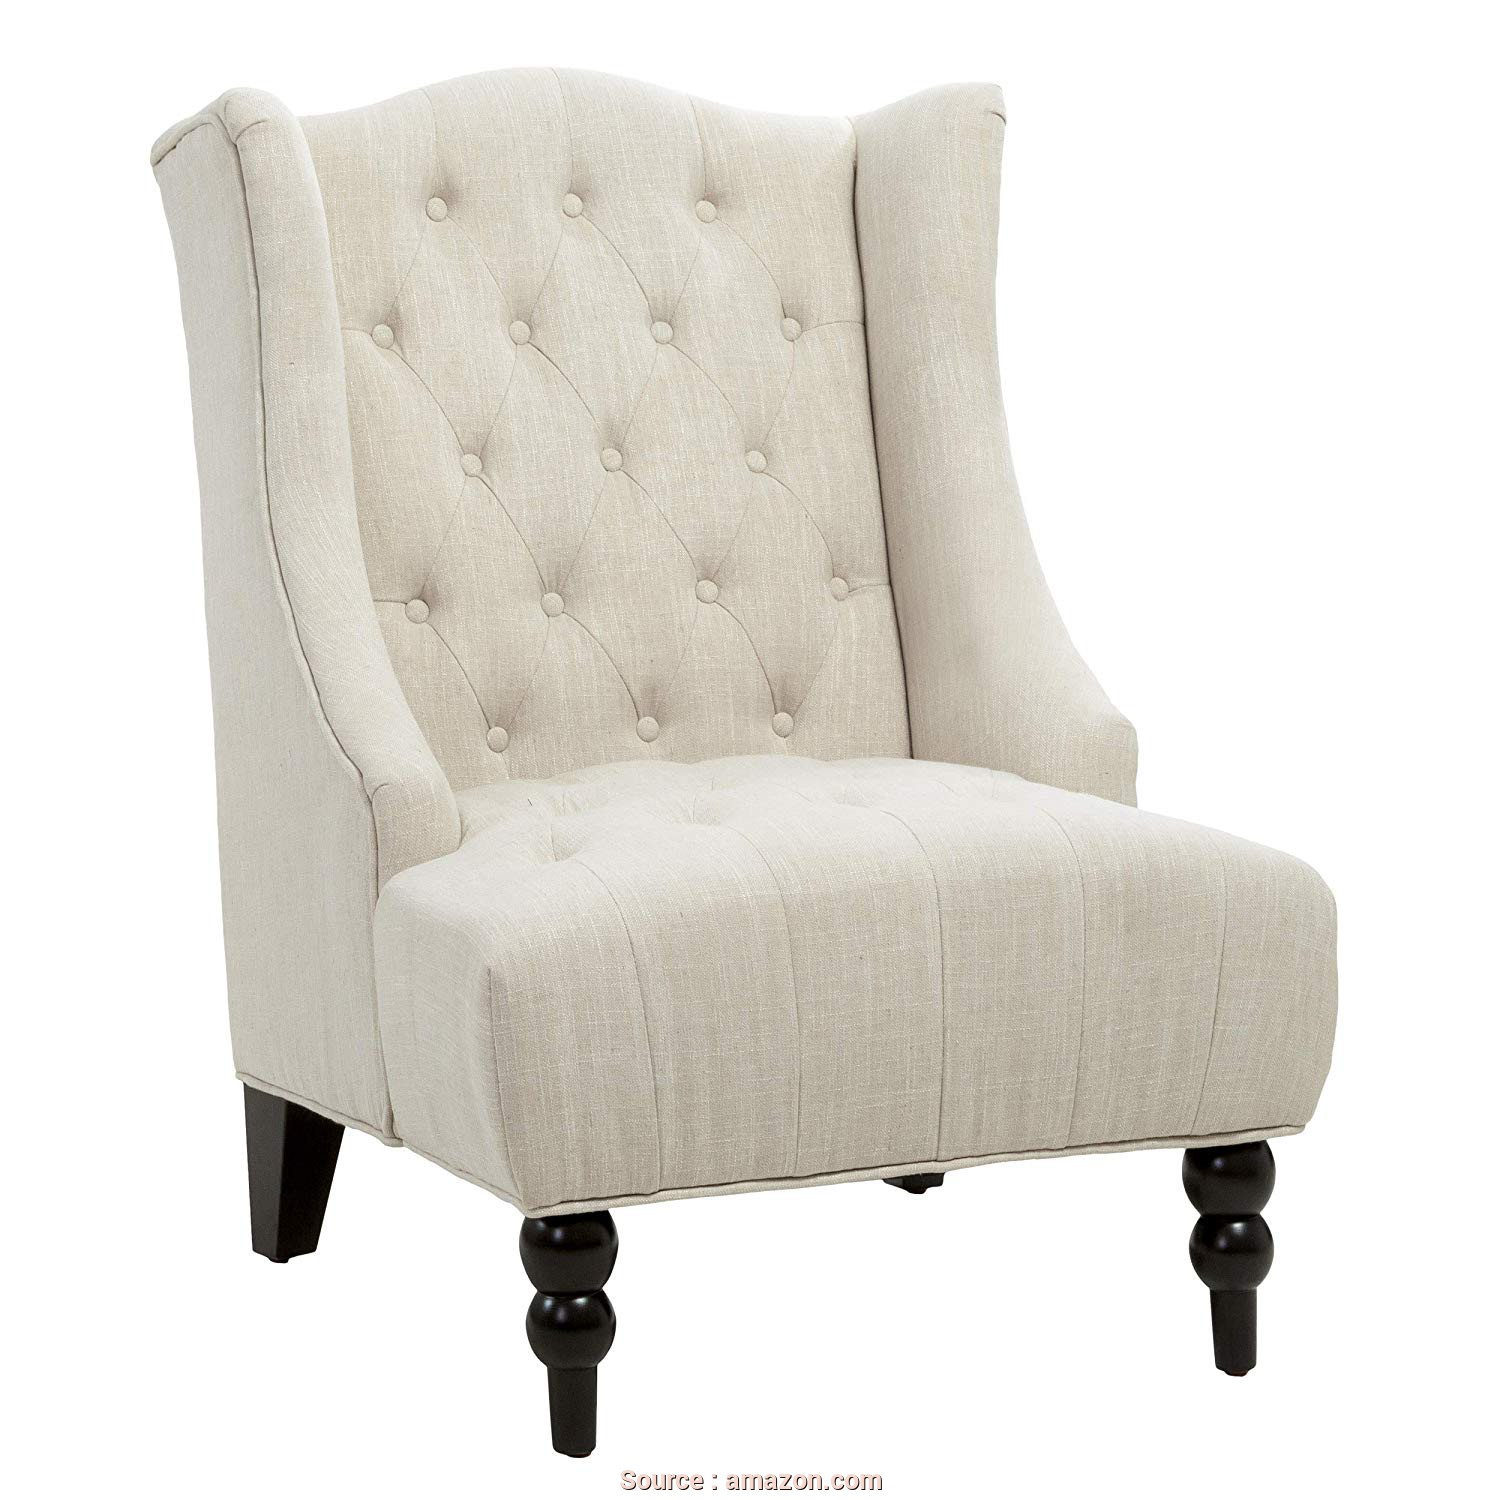 Divano Vintage Amazon, Stupefacente Amazon.Com: Great Deal Furniture Clarice Tall Wingback Tufted Fabric Accent Chair, Vintage Club Seat, Living Room (Light Beige): Home & Kitchen